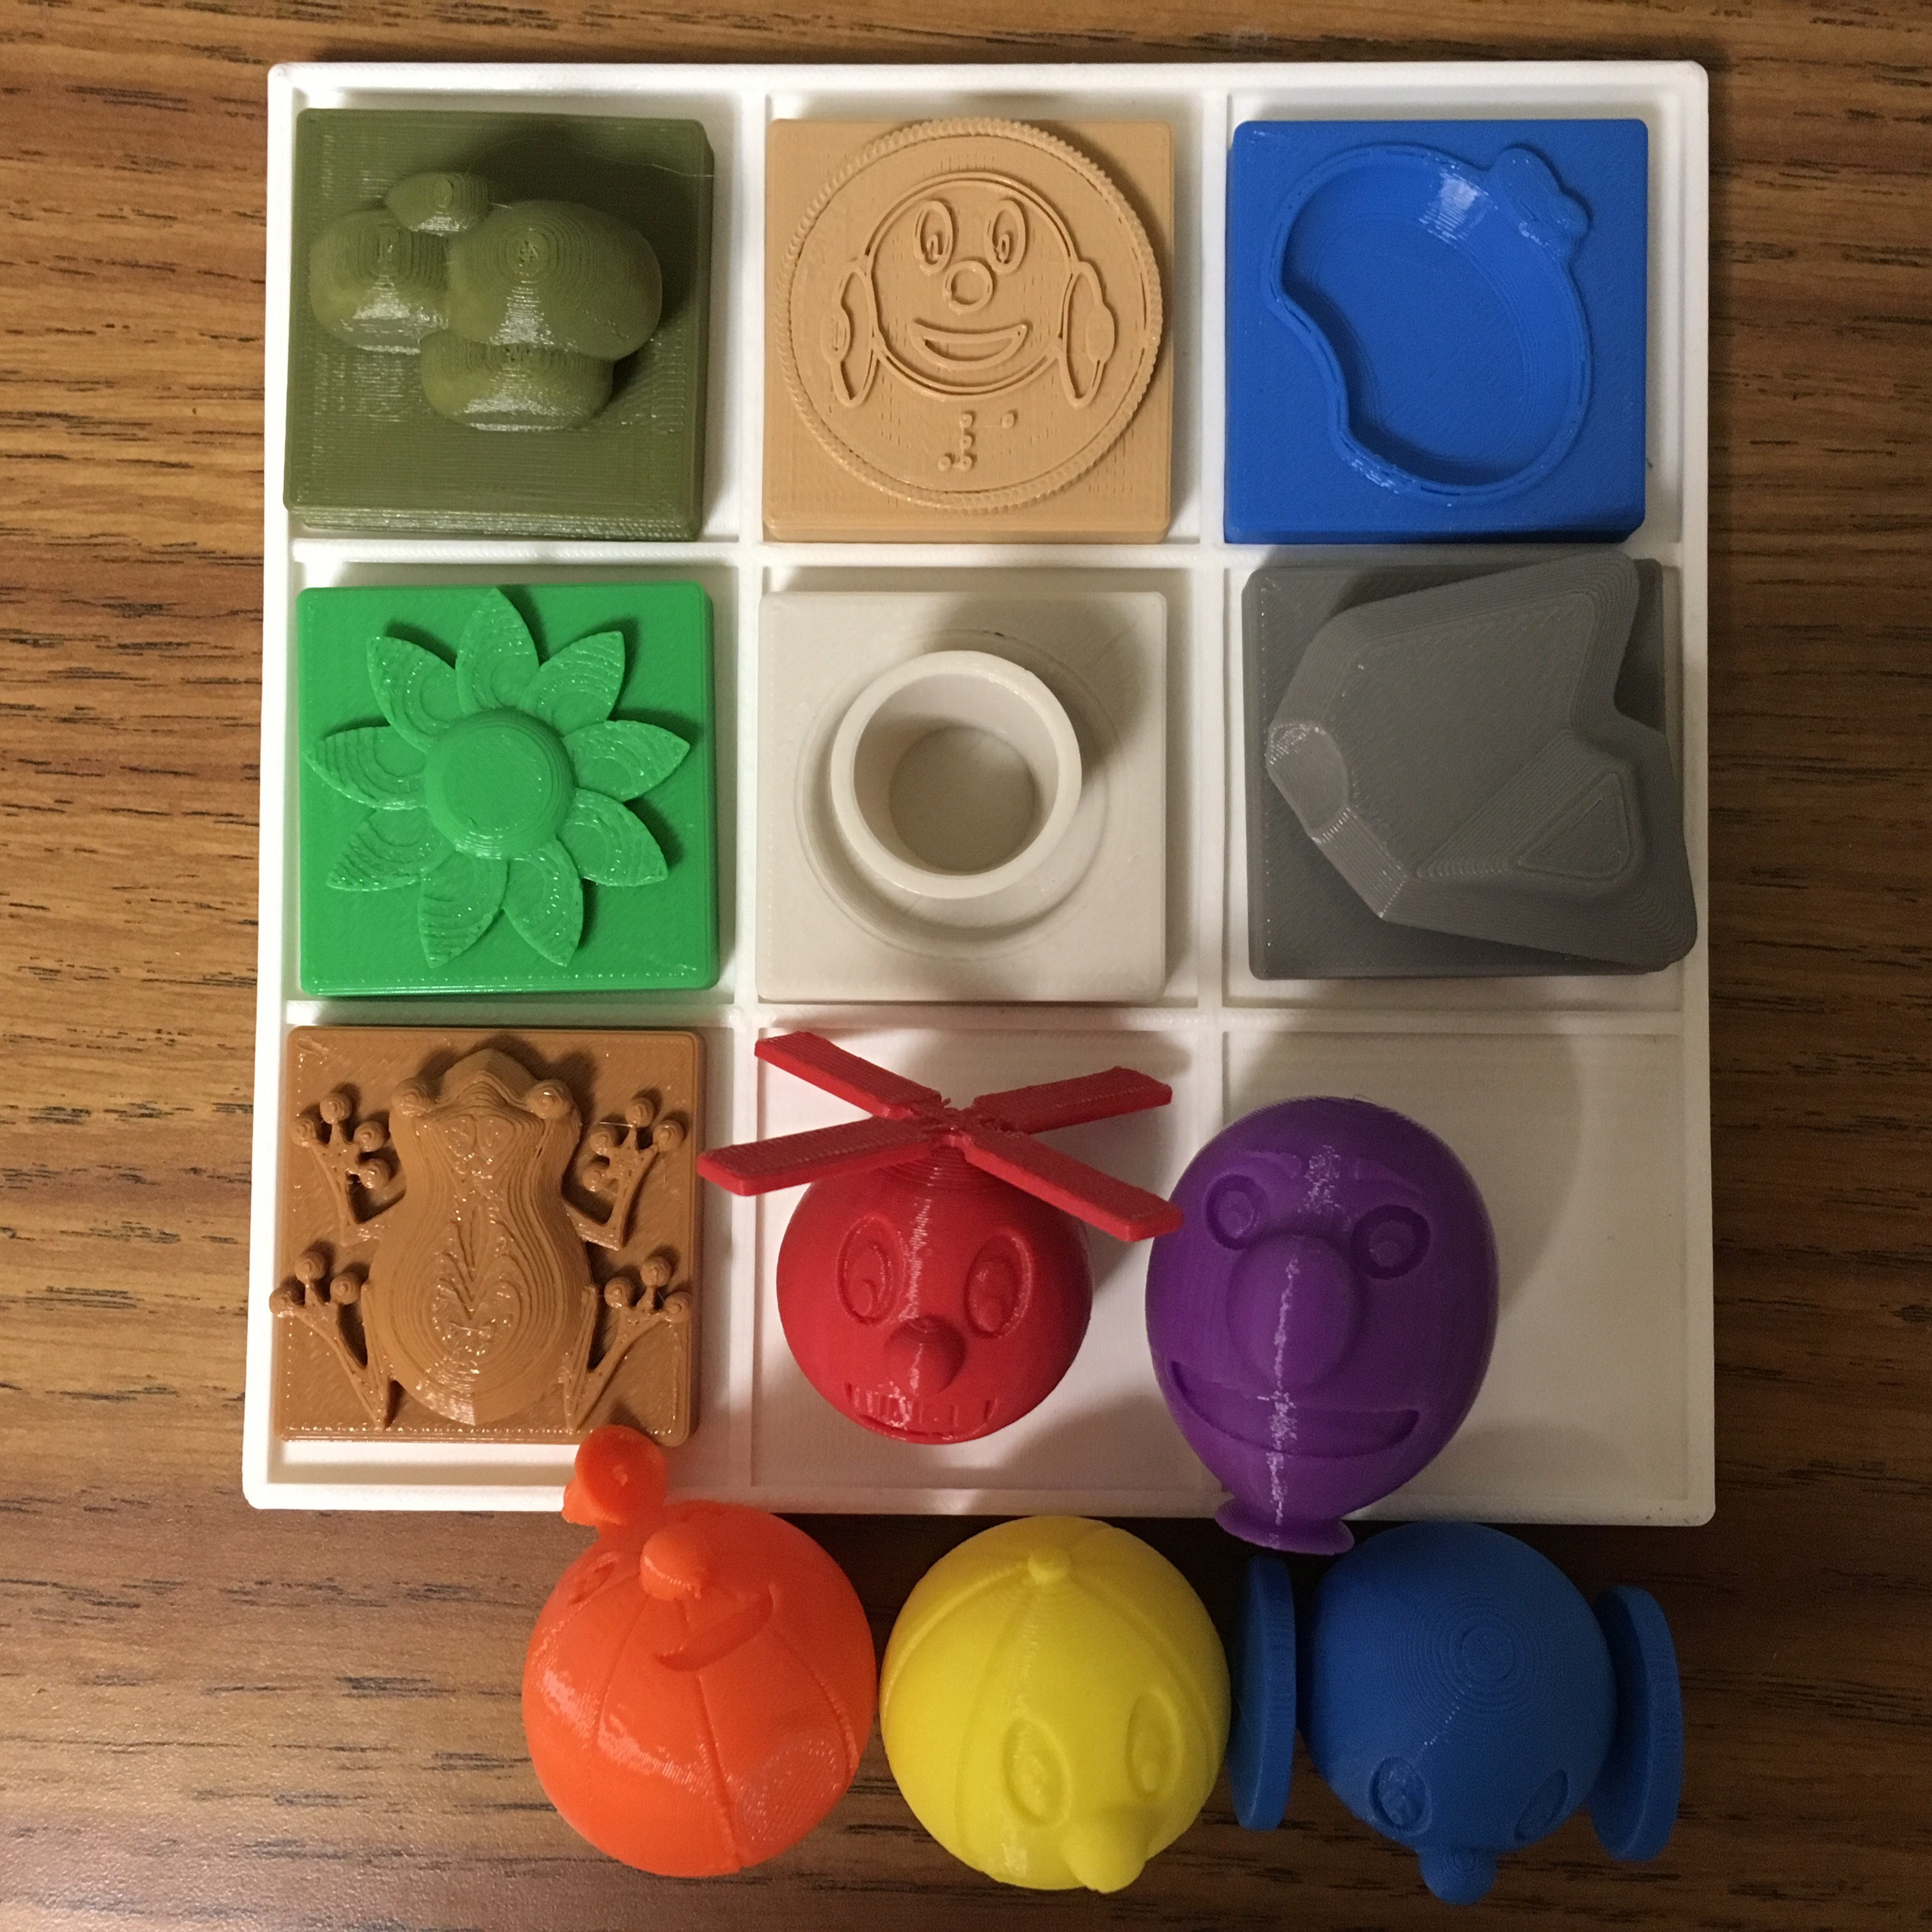 Photo of Ballyland 3D printed characters, obstacles and grid - each printed in a solid bright color.